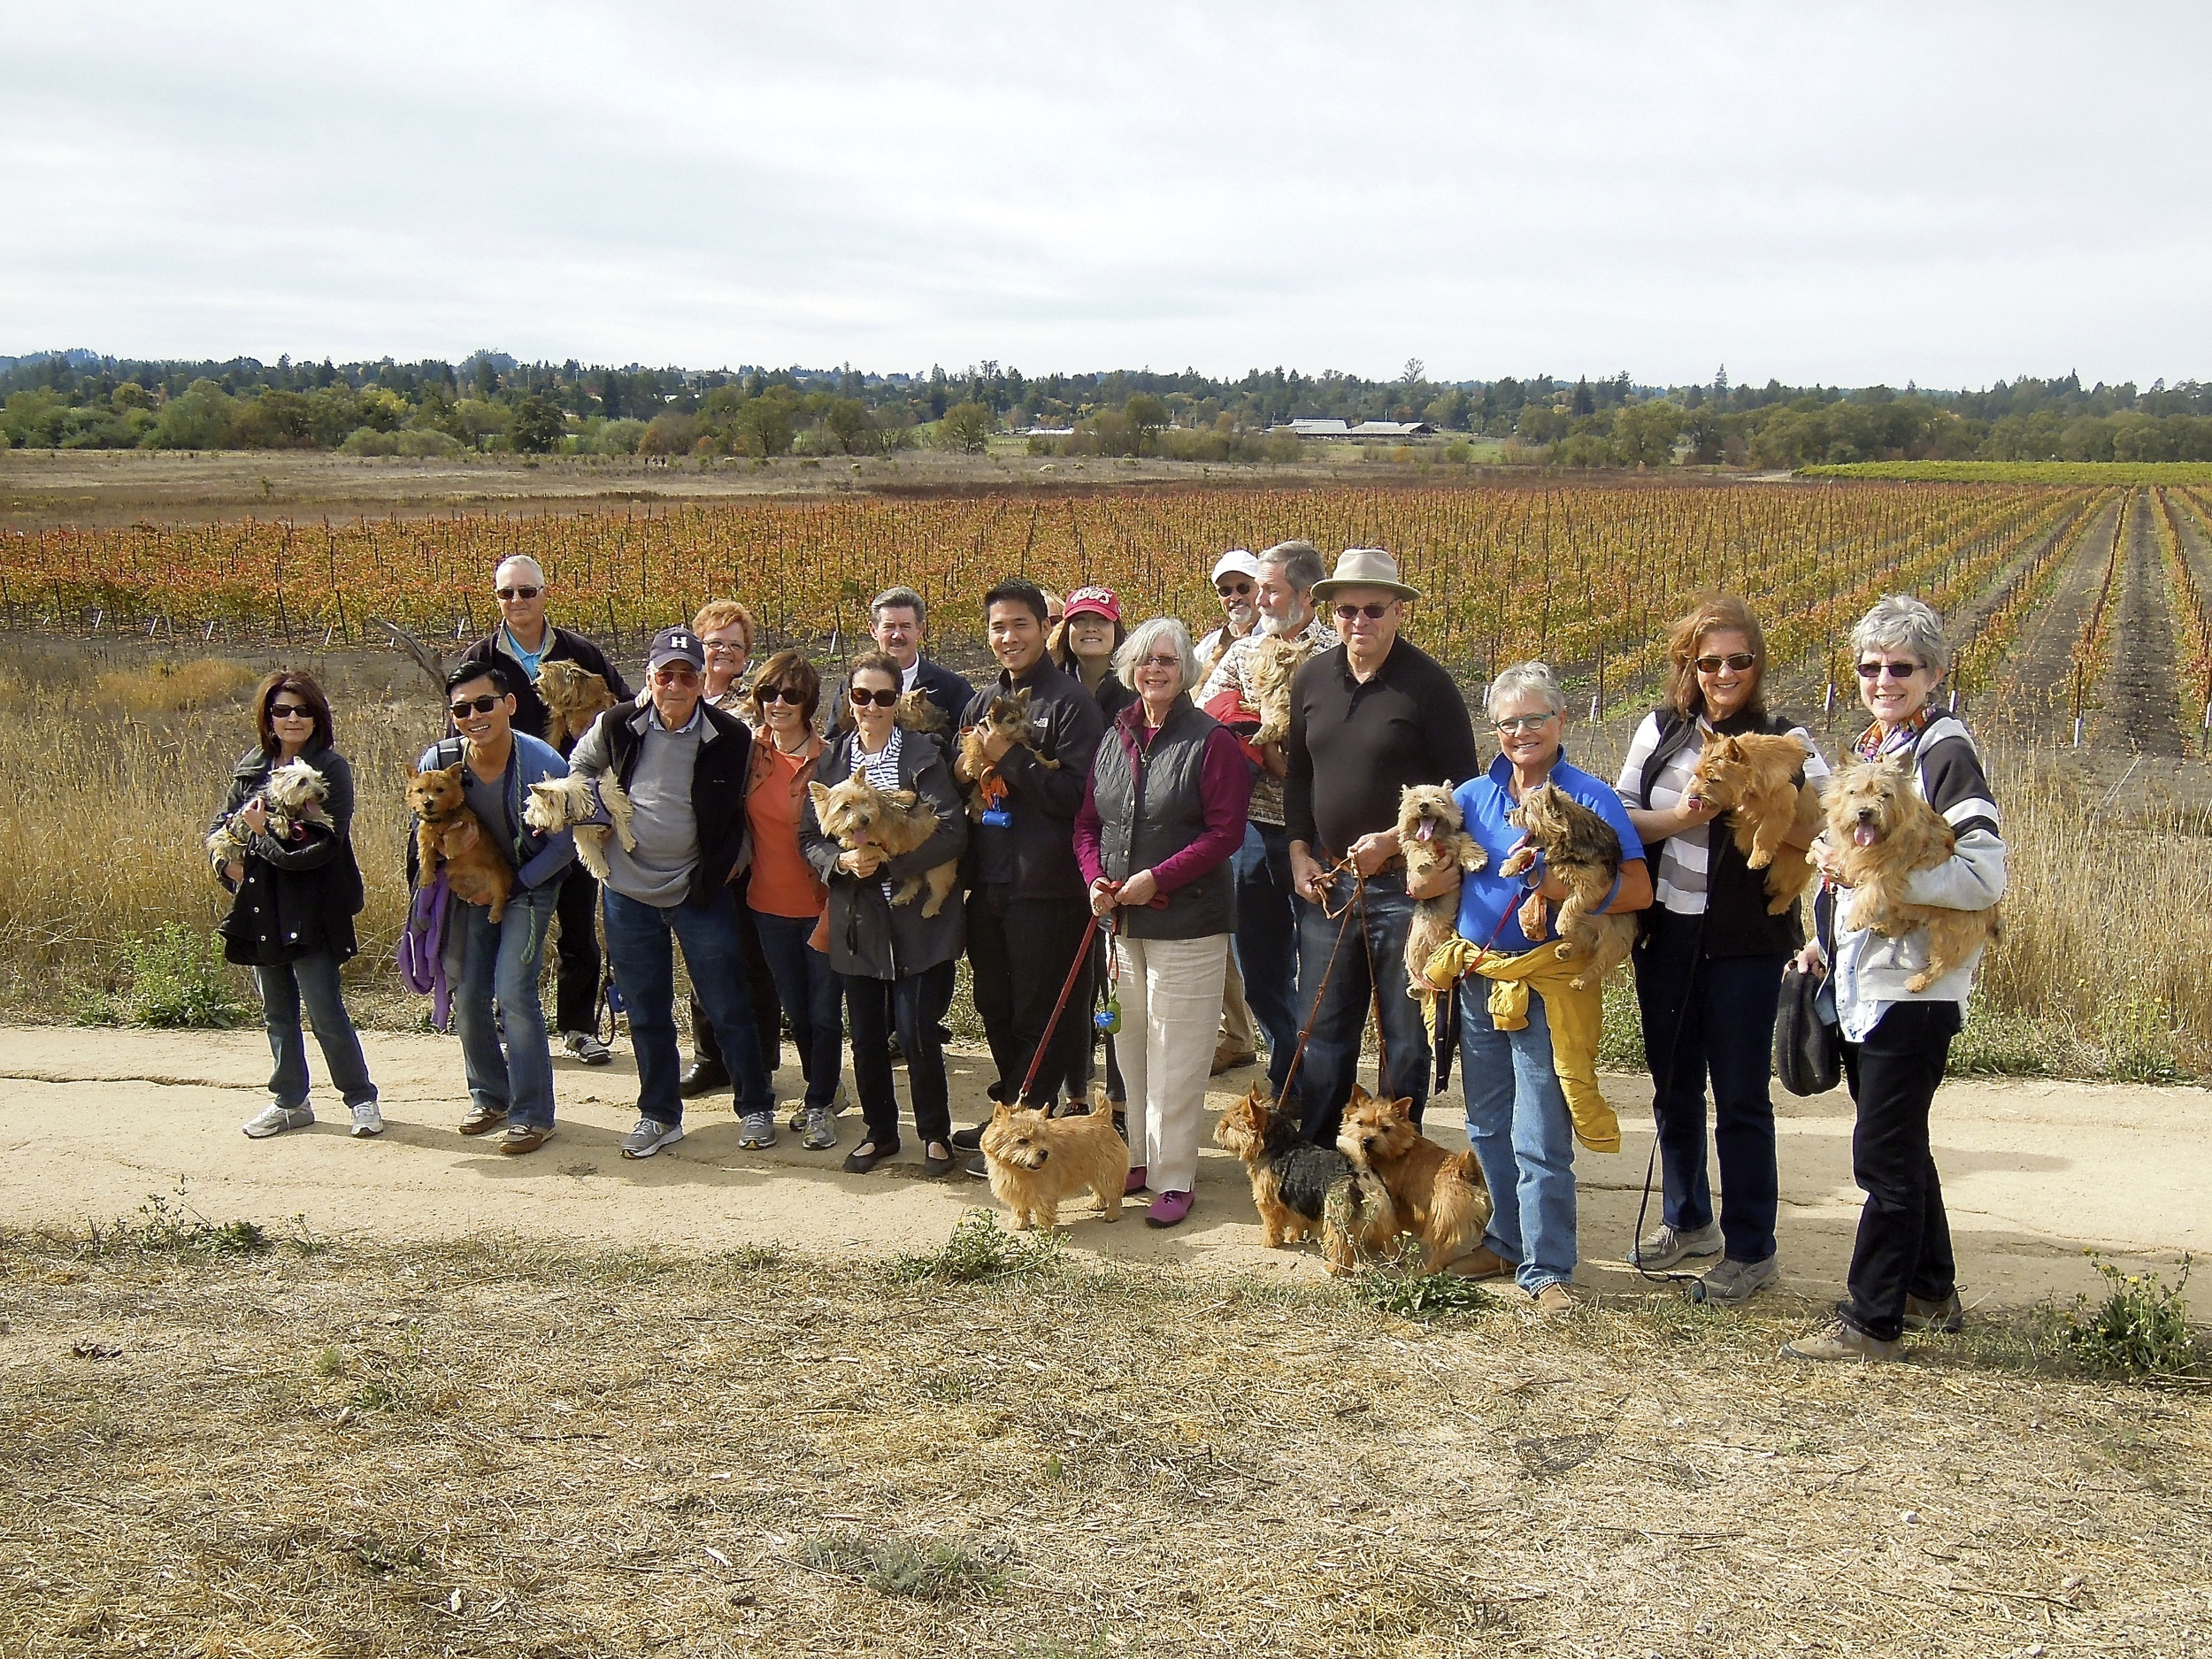 Dog walkers at Balletto Winery 2013.jpg